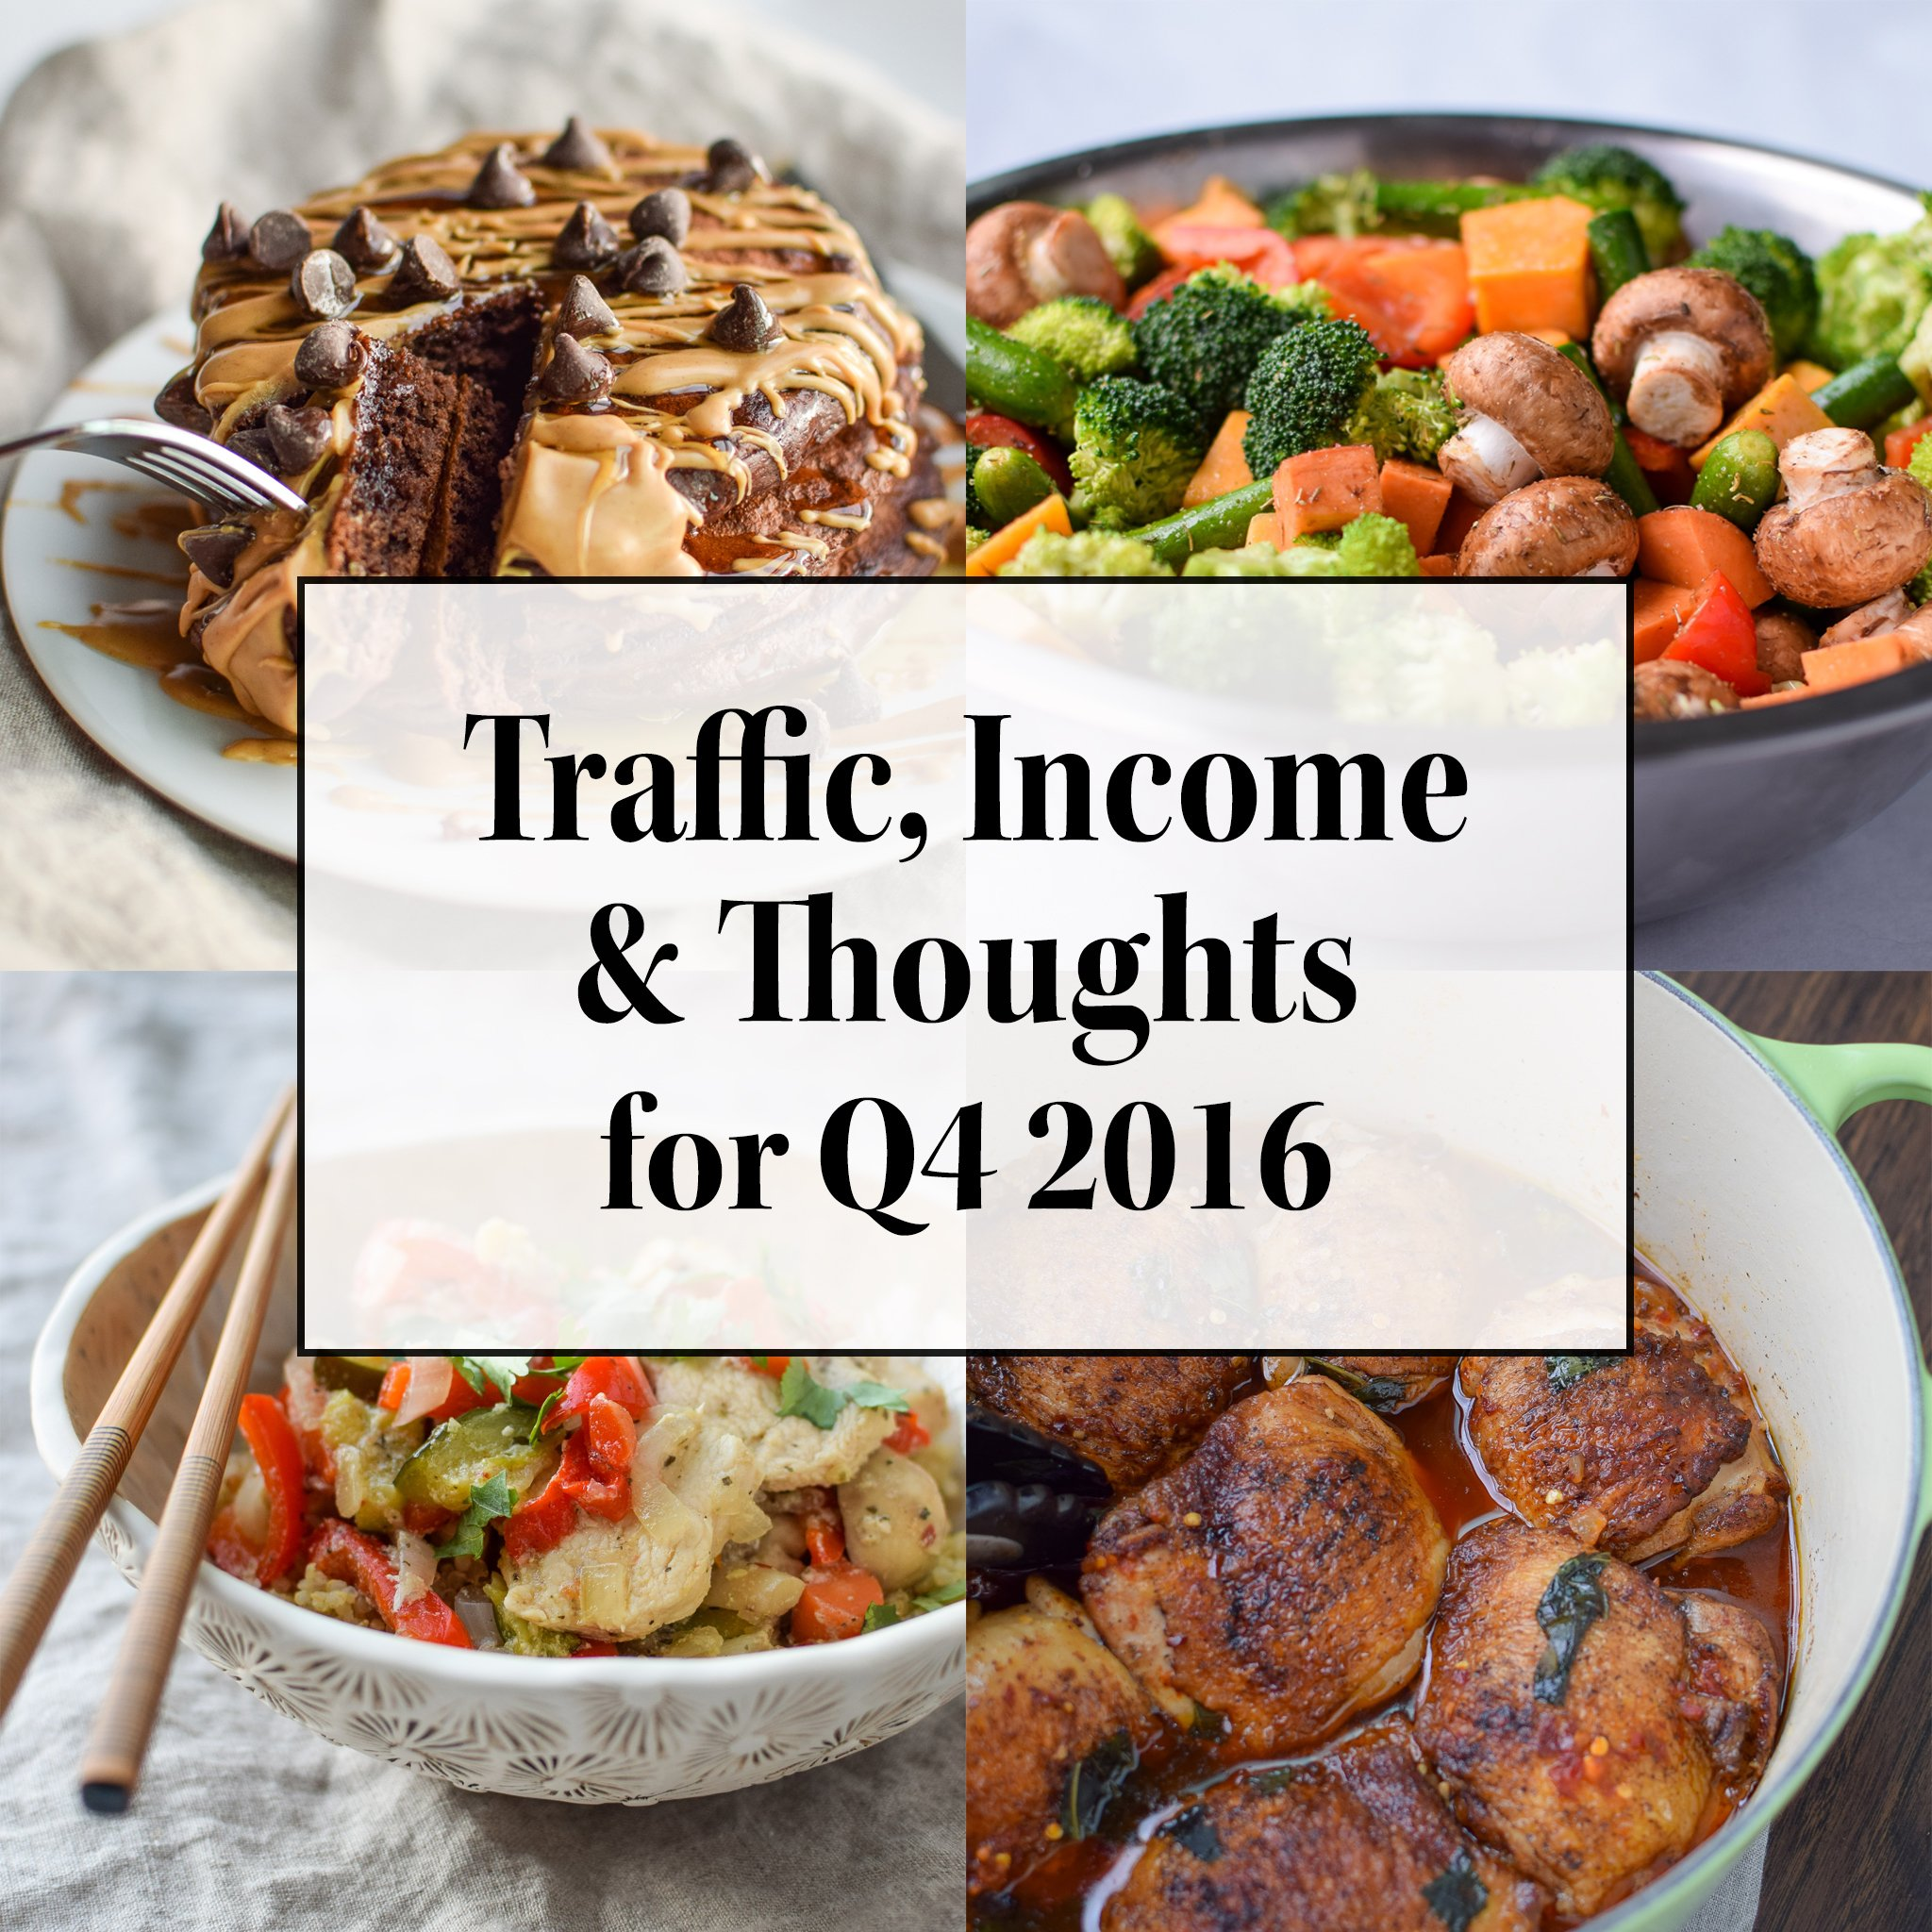 Traffic, Income & Thoughts for Q4 2016 - Follow Project Meal Plan's traffic, income, and thoughts on October-December 2016 and the progress of the blog as a whole!